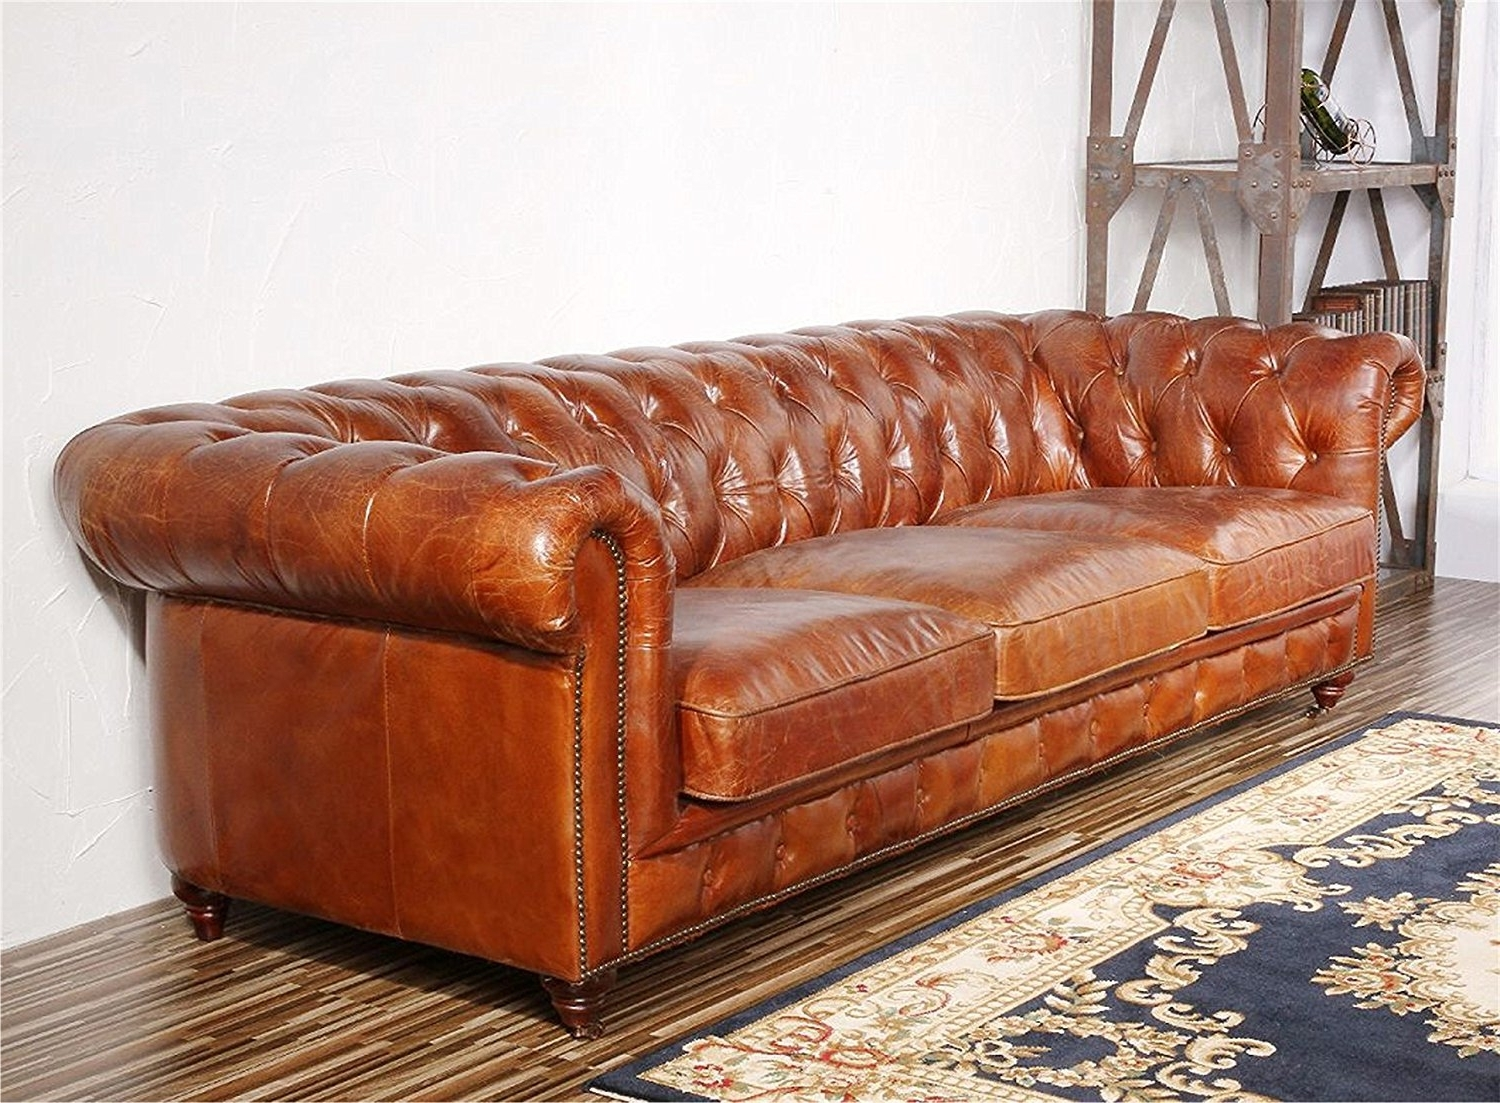 Famous Sofa : Sofa Tufted Leather Sleeper Marthaleather Set Modern Inside Craigslist Leather Sofas (View 12 of 20)